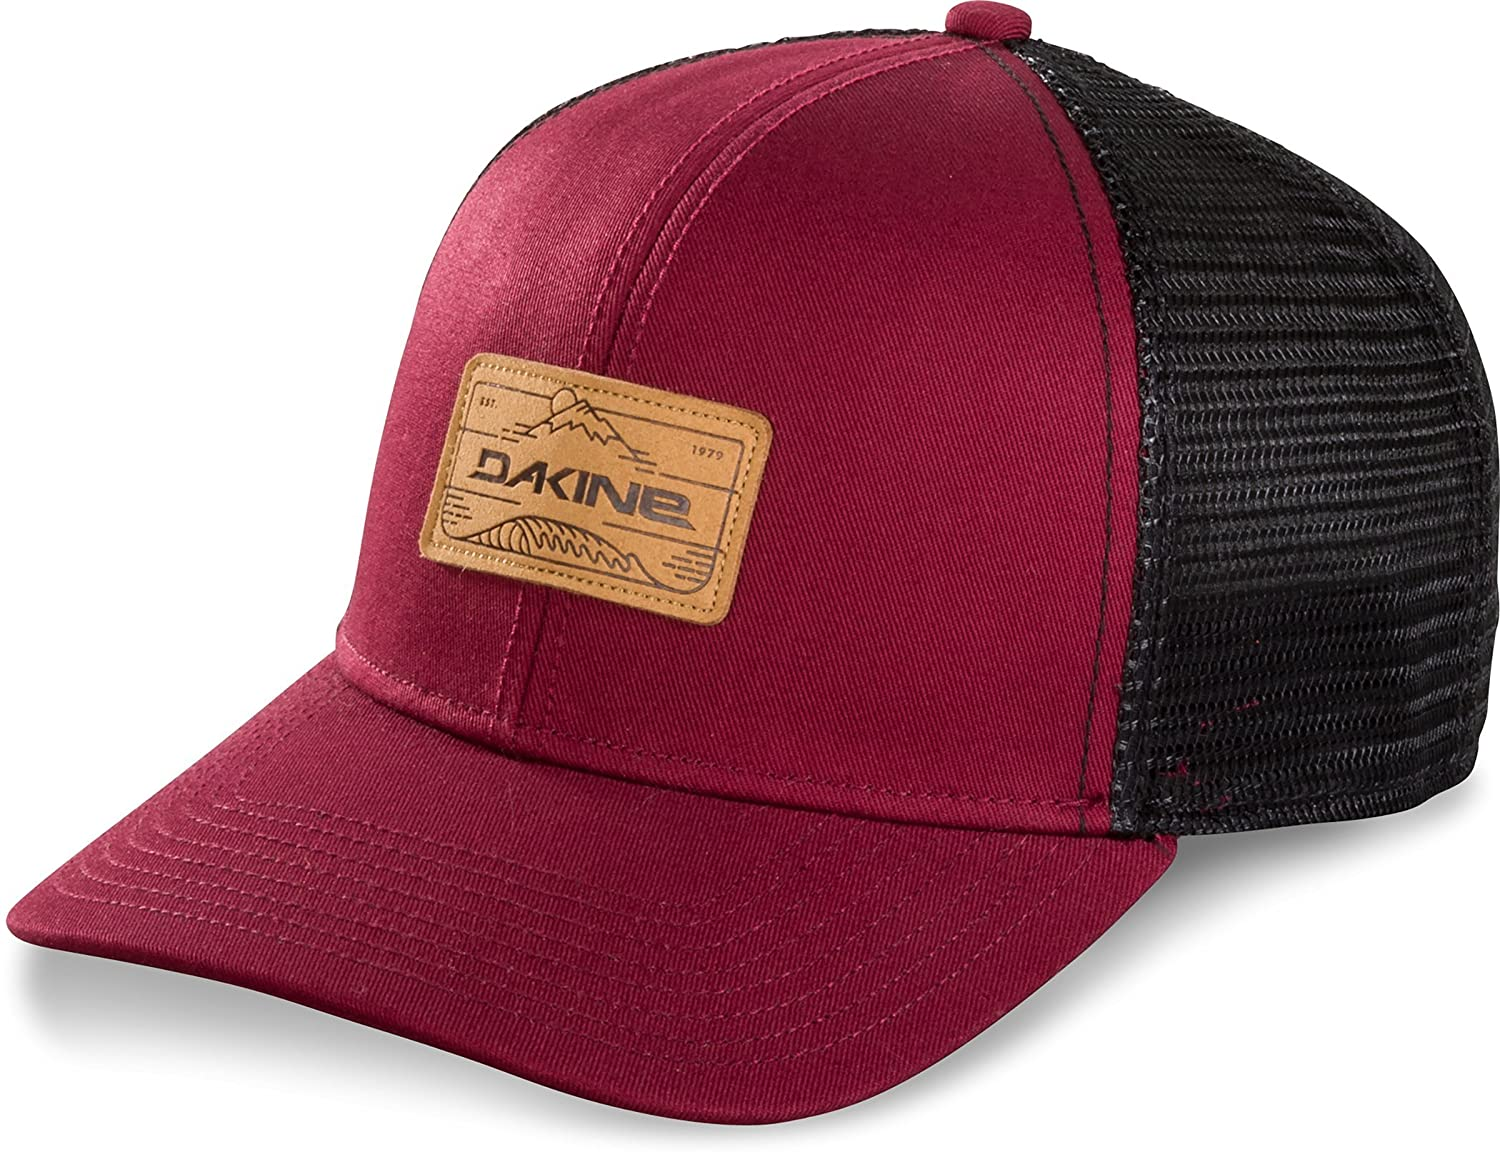 d4dbde45fb19c Amazon.com  Dakine Mens Peak to Peak Trucker Hat